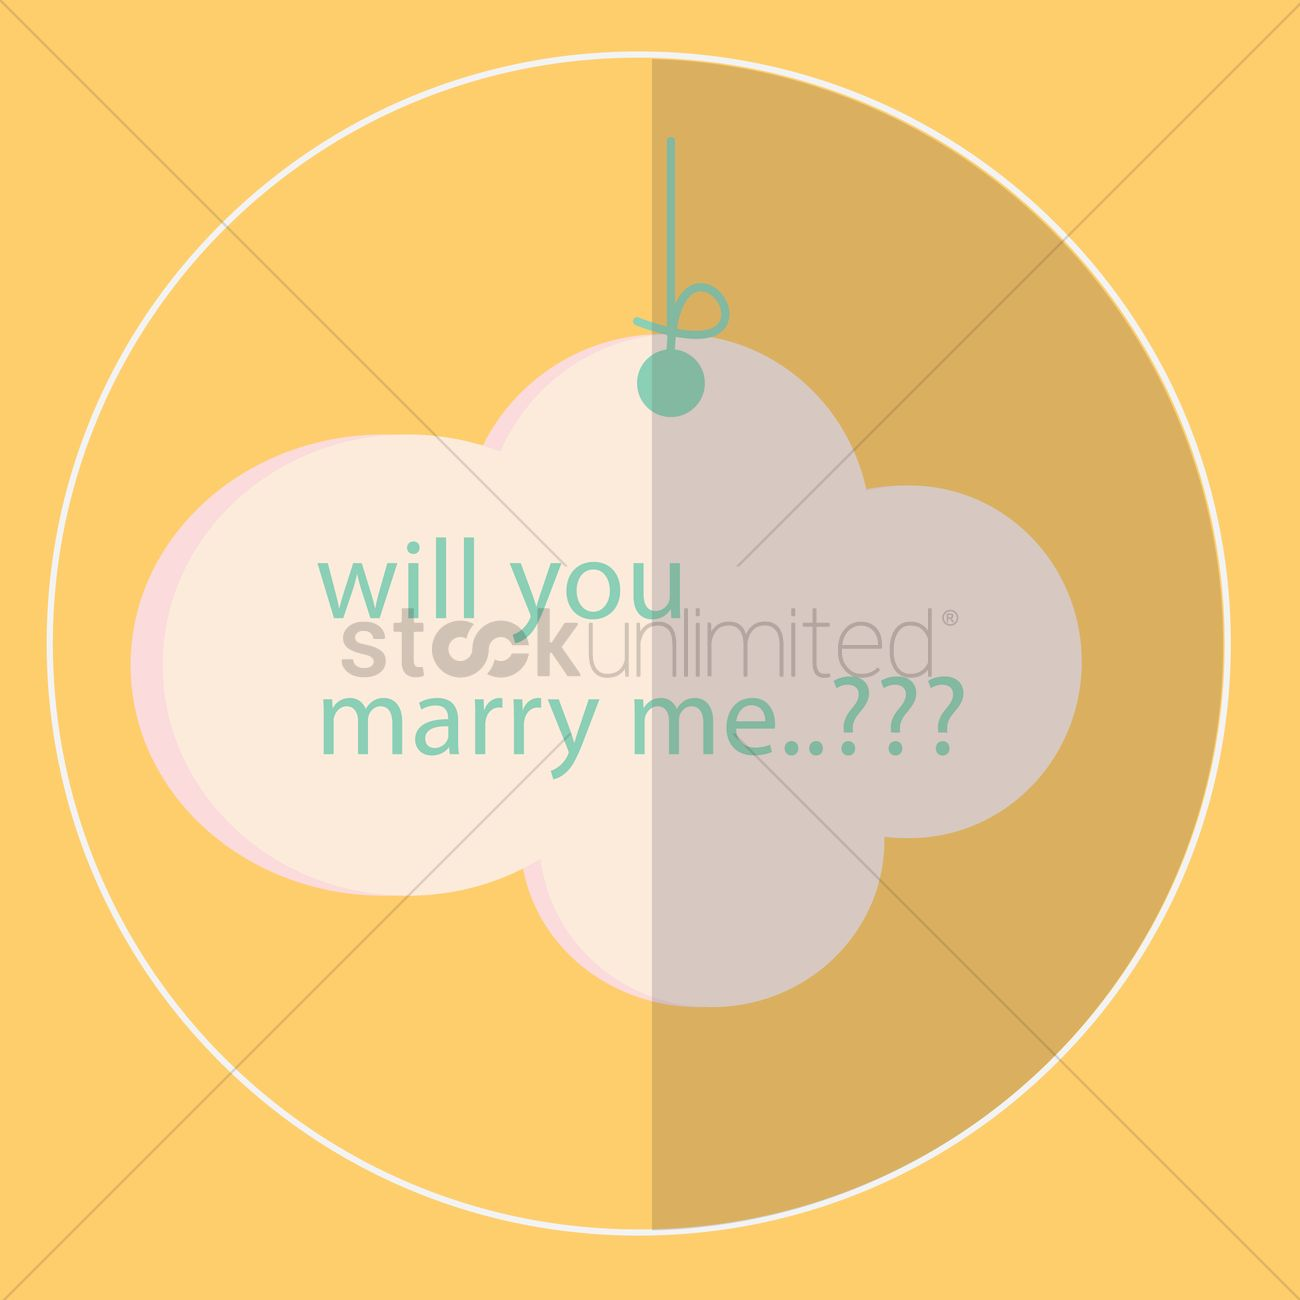 Marriage proposal card Vector Image - 1476686 | StockUnlimited